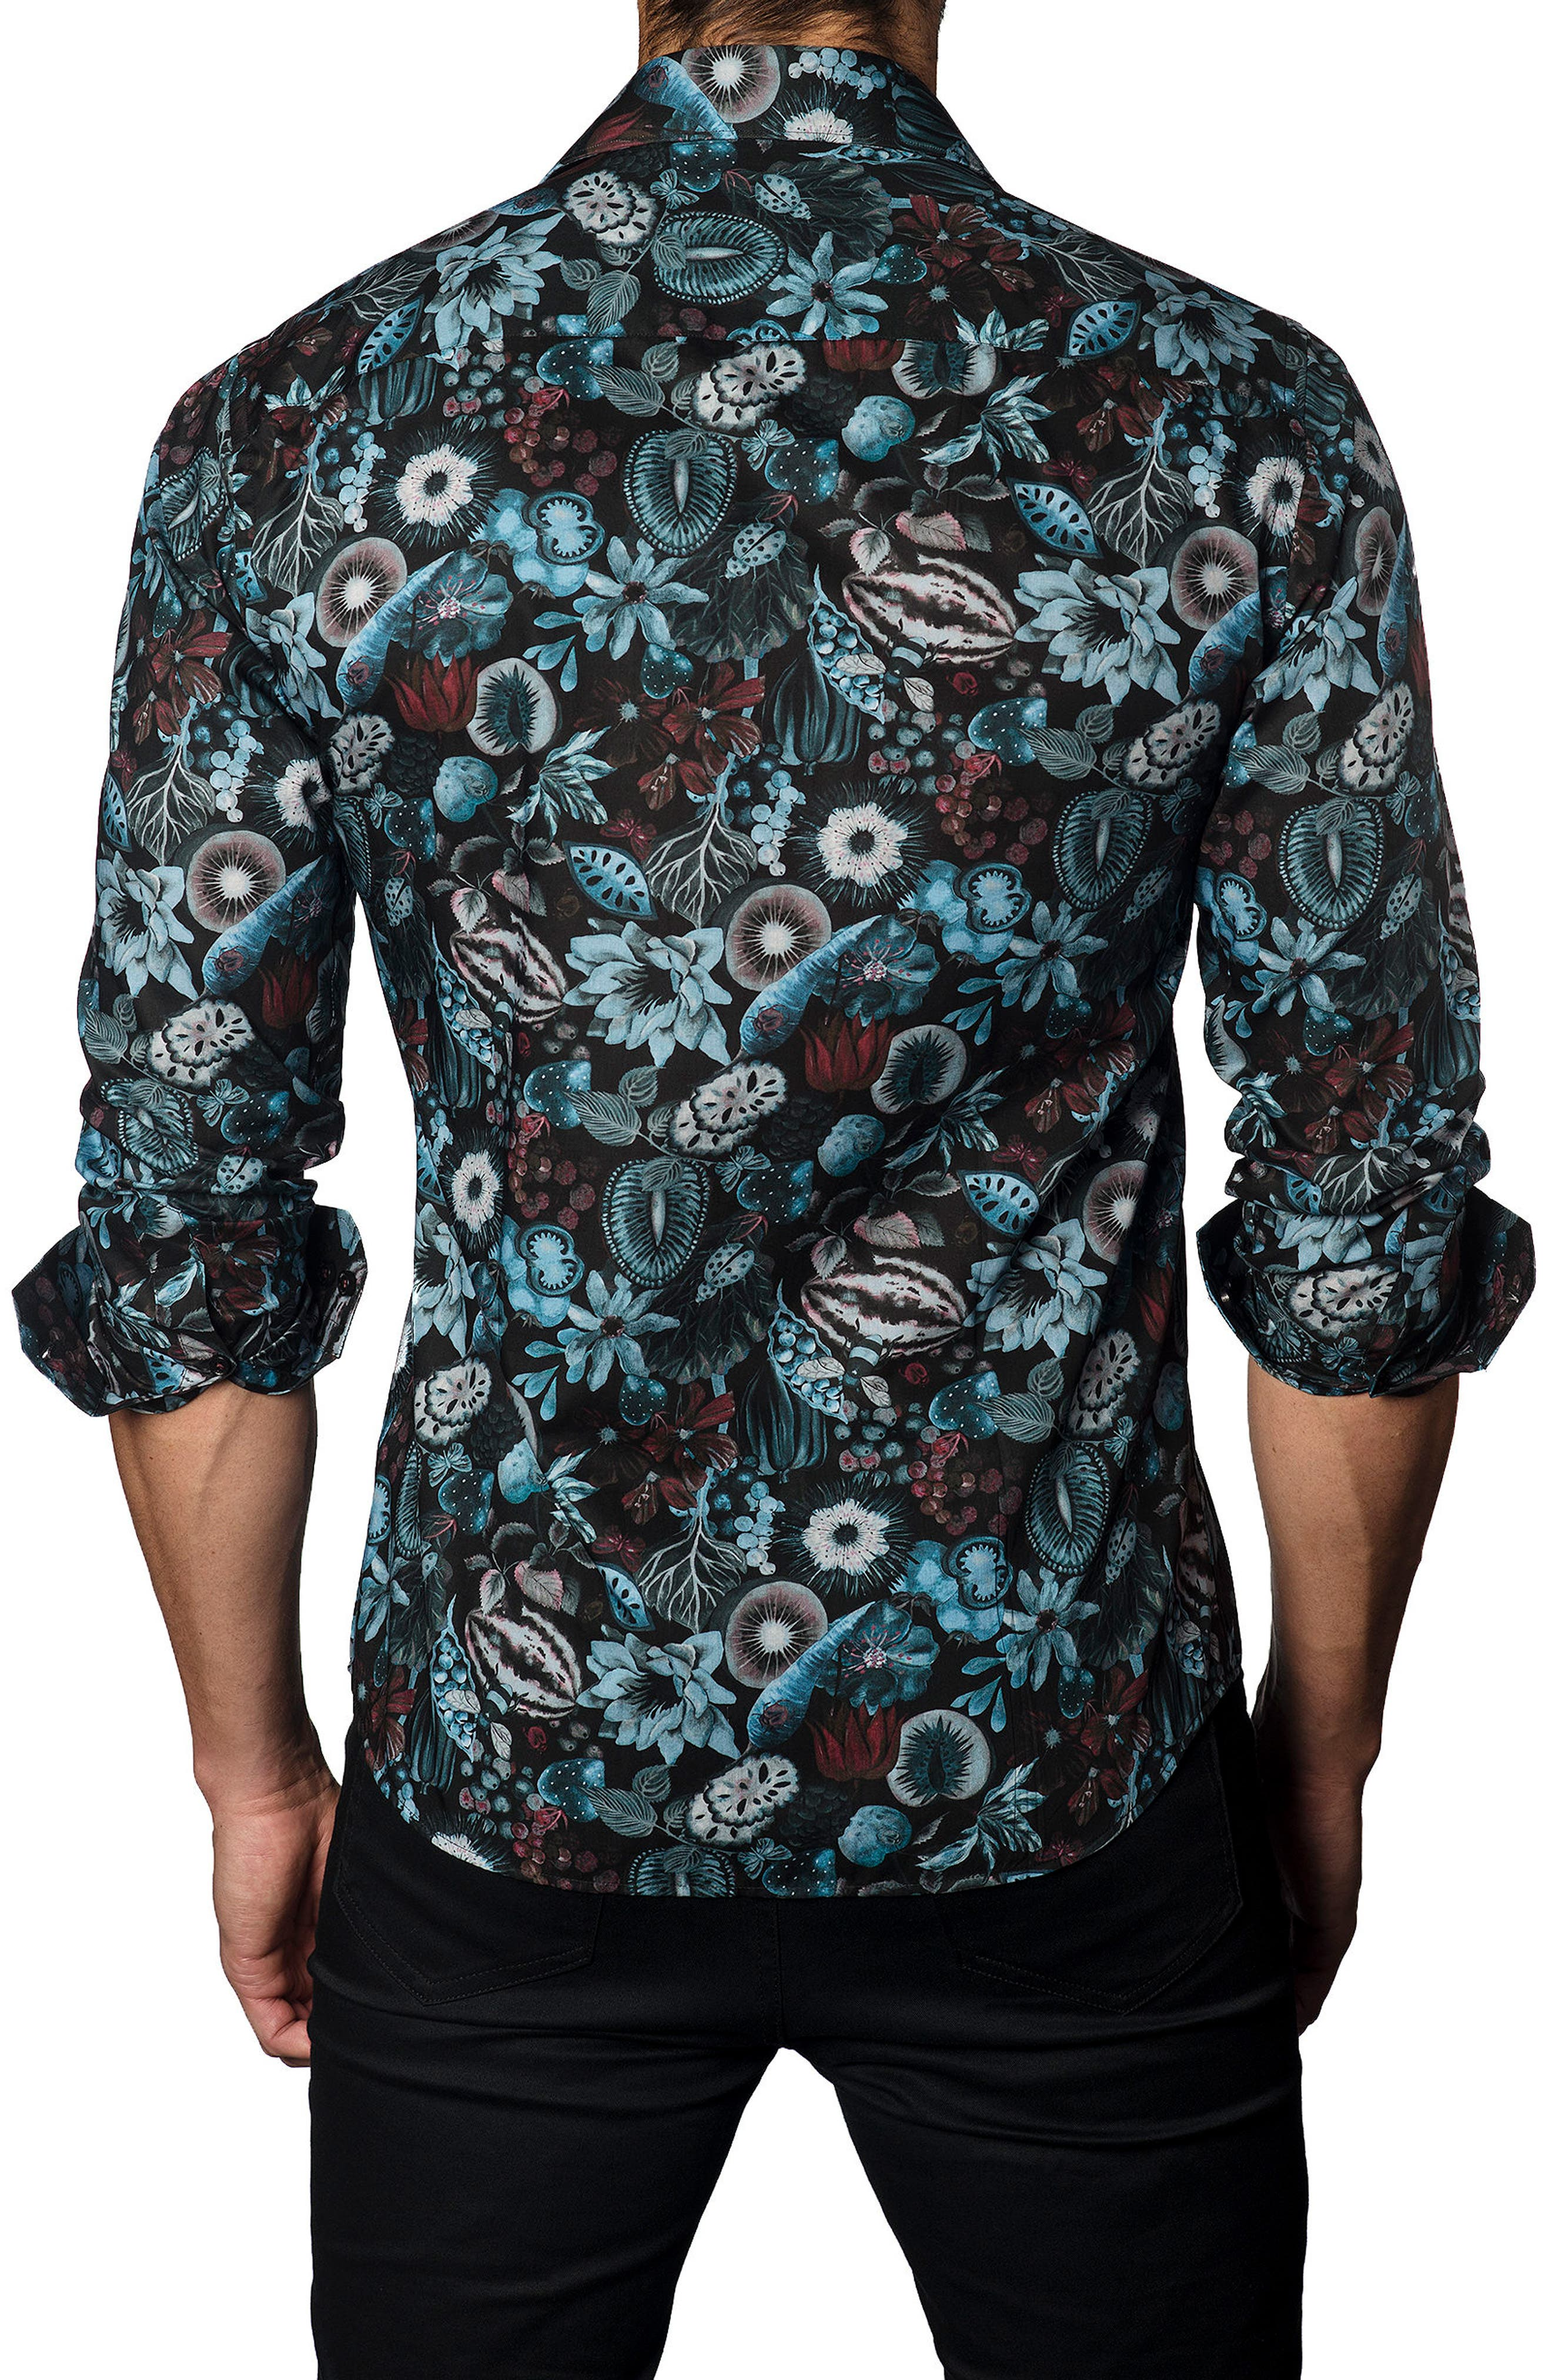 Trim Fit Black Garden Print Sport Shirt,                             Alternate thumbnail 2, color,                             001